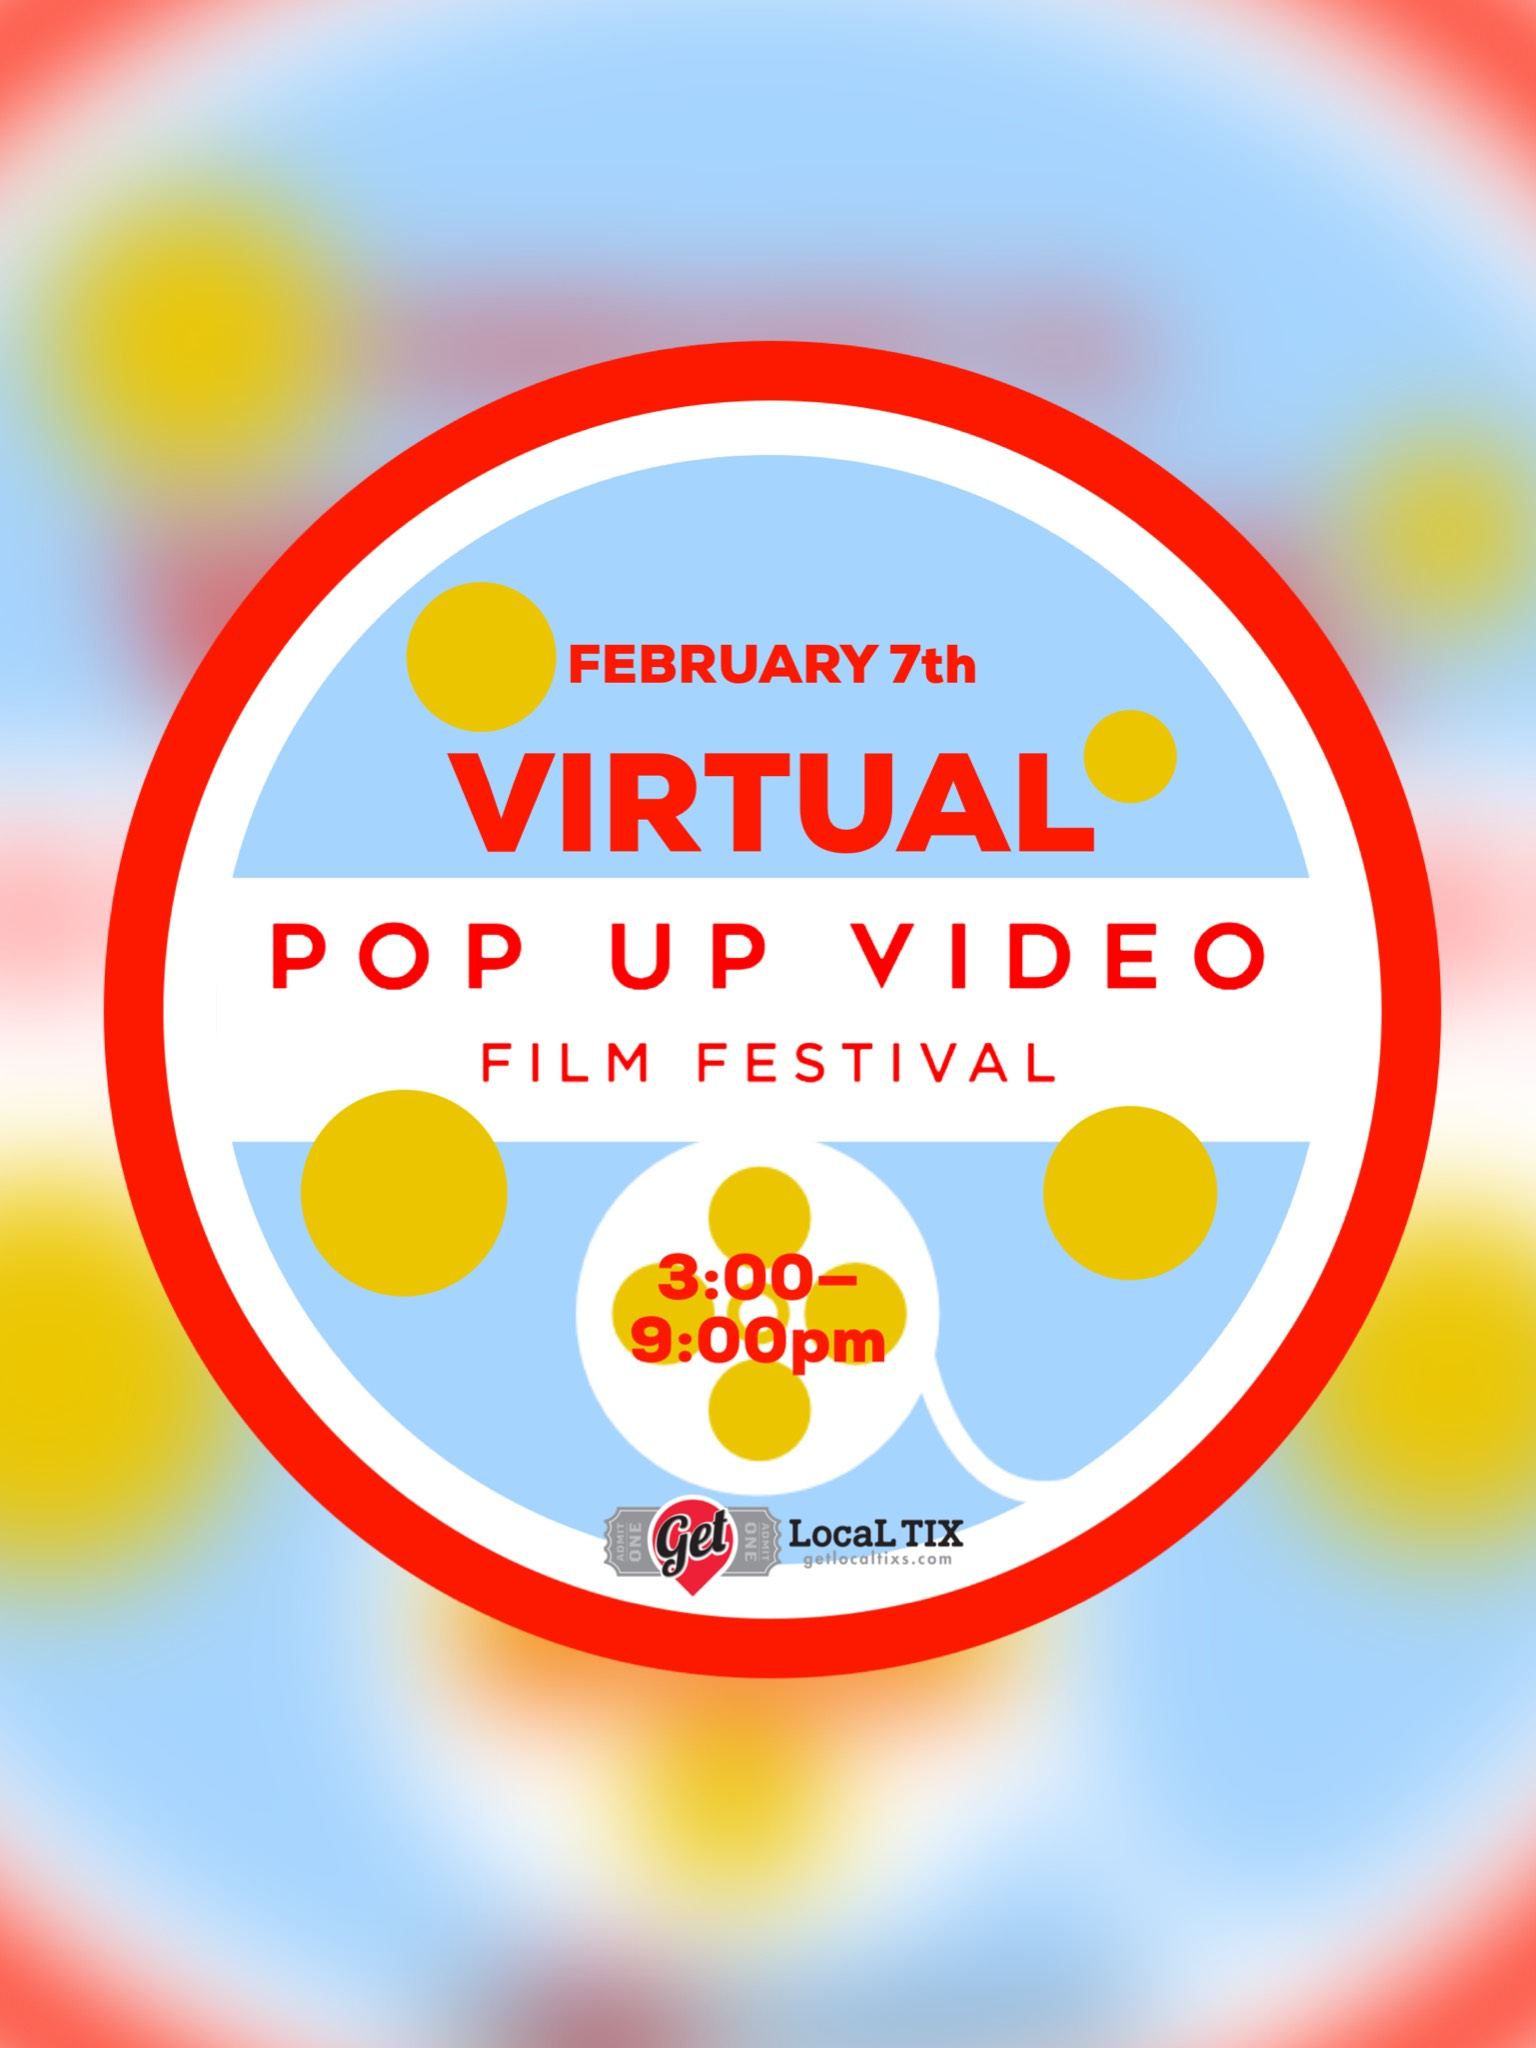 Pop Up Video Film Festival